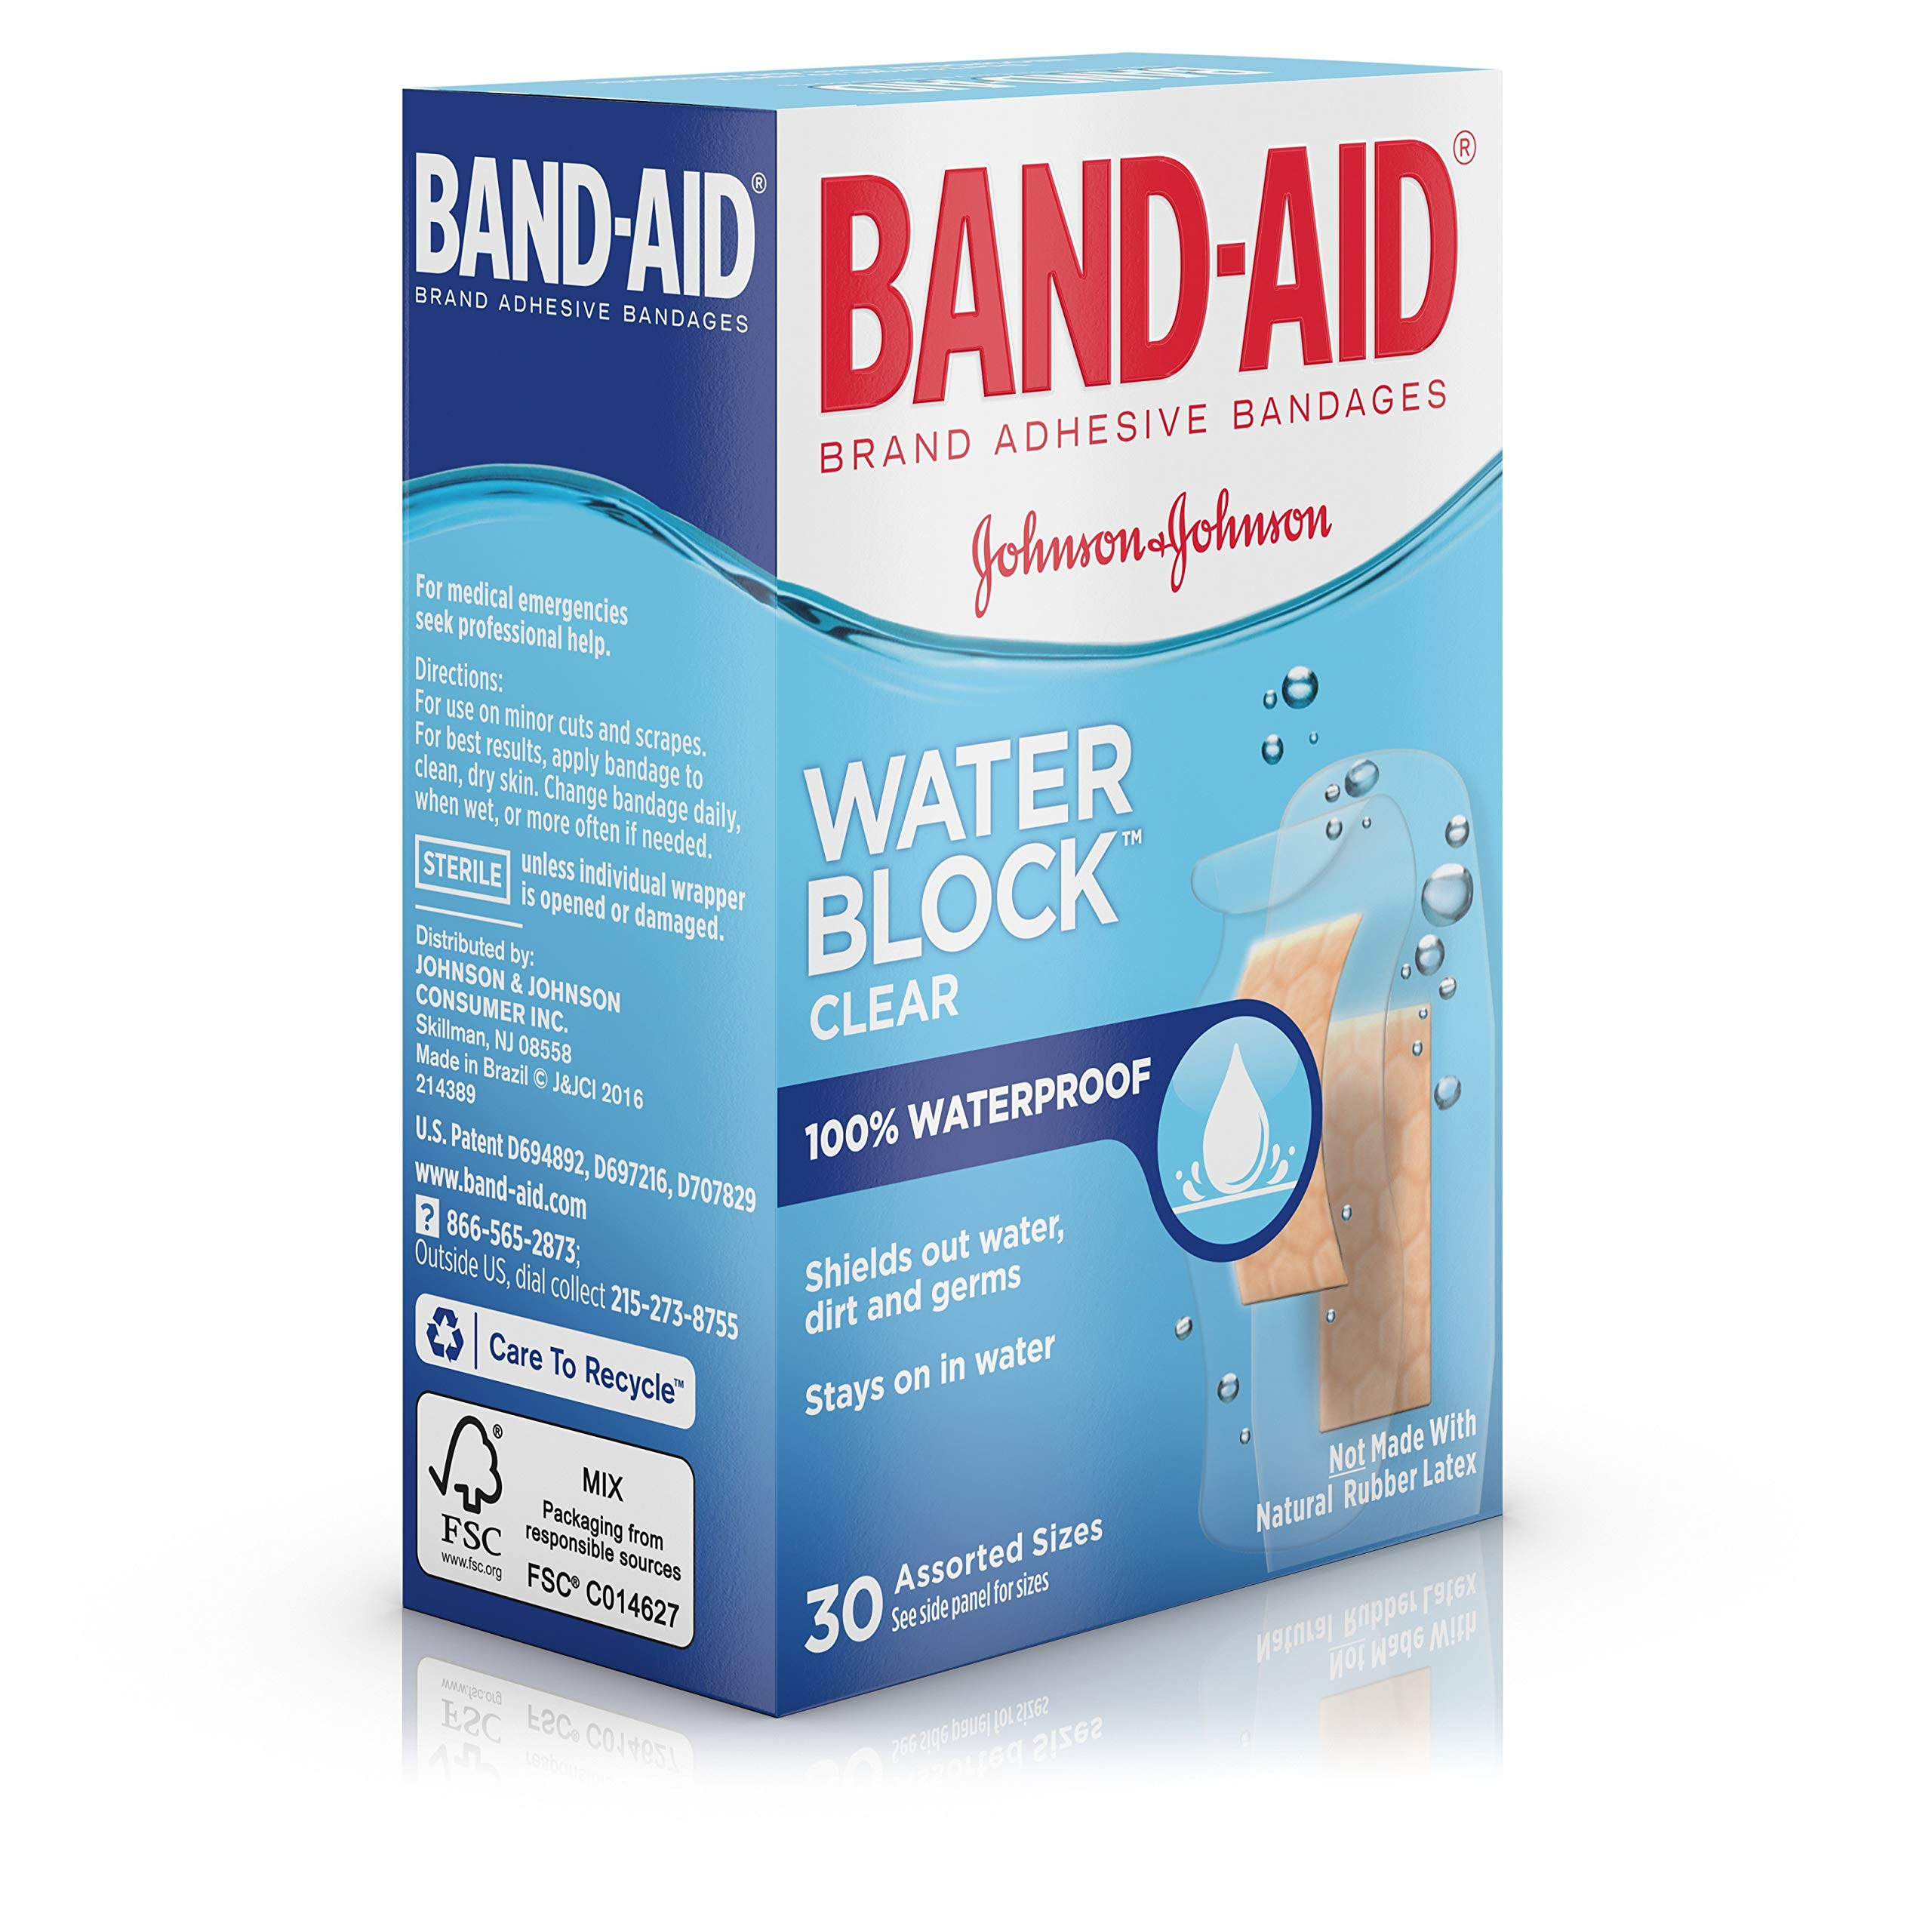 Band-Aid Brand Water Block Plus Waterproof Clear Adhesive Bandages for Minor Cuts and Scrapes, 30 ct (6 Pack) by Band-Aid (Image #8)